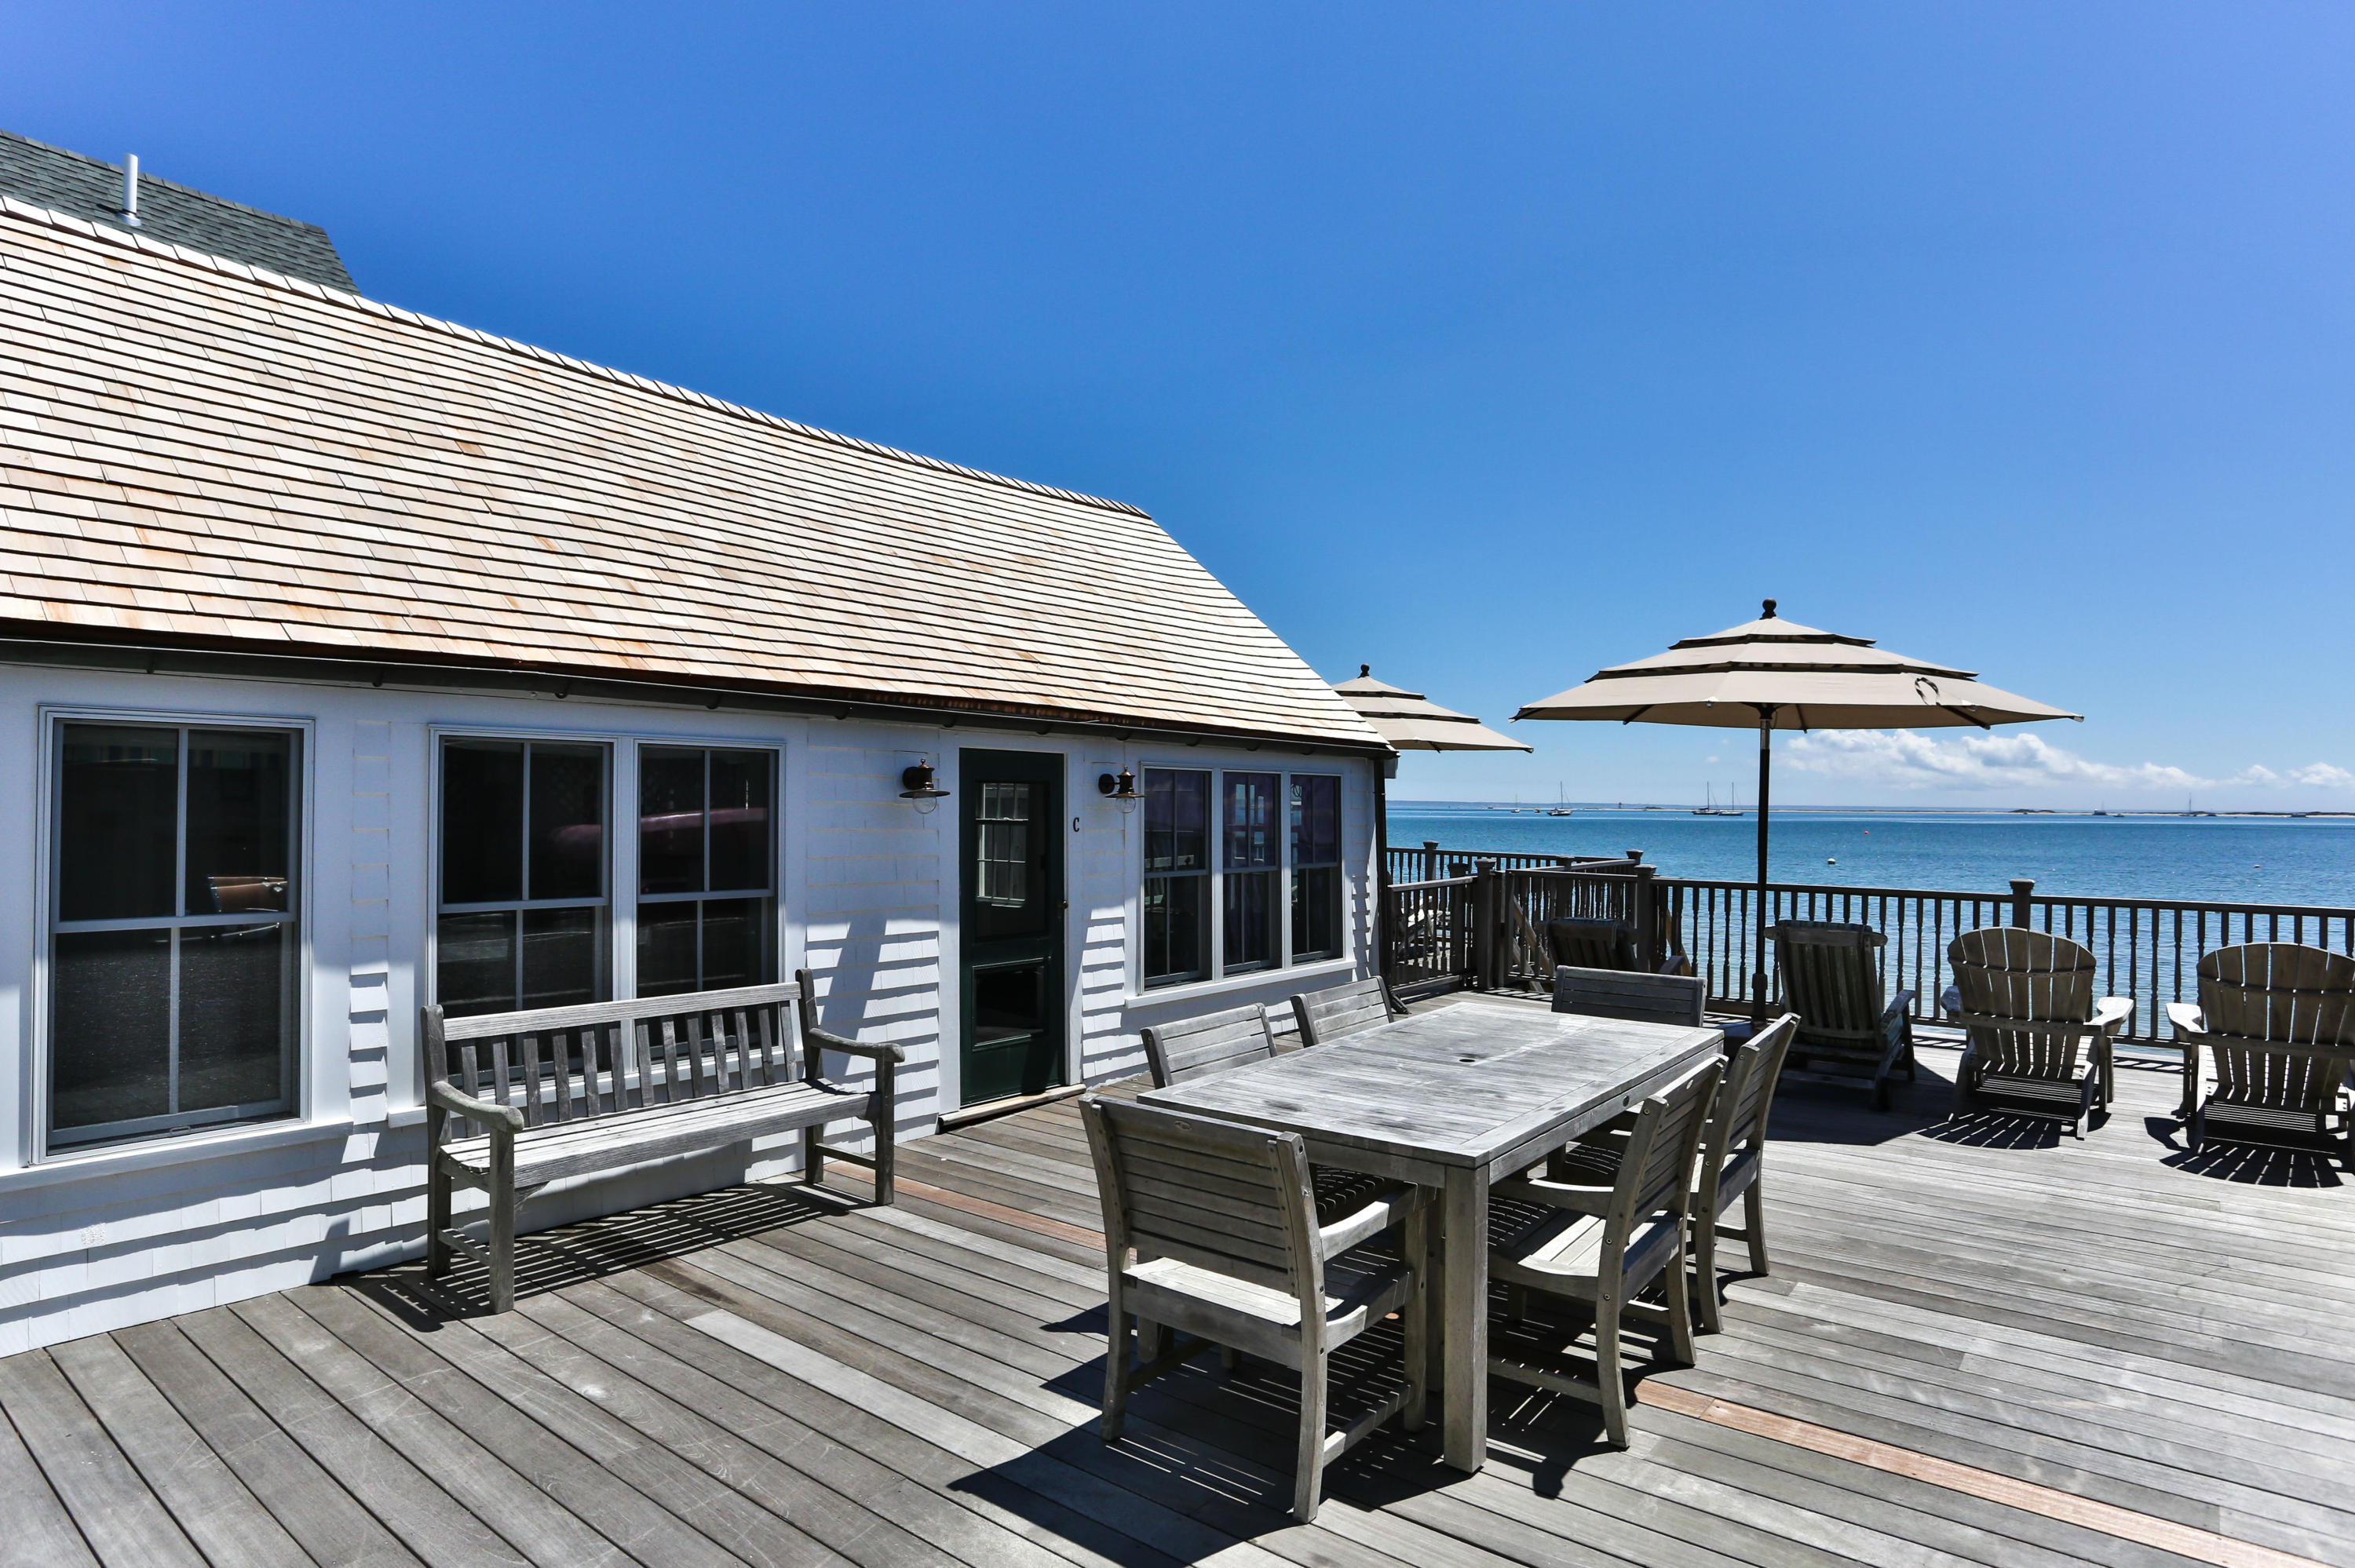 47 Commercial Street, Provincetown MA, 02657 details